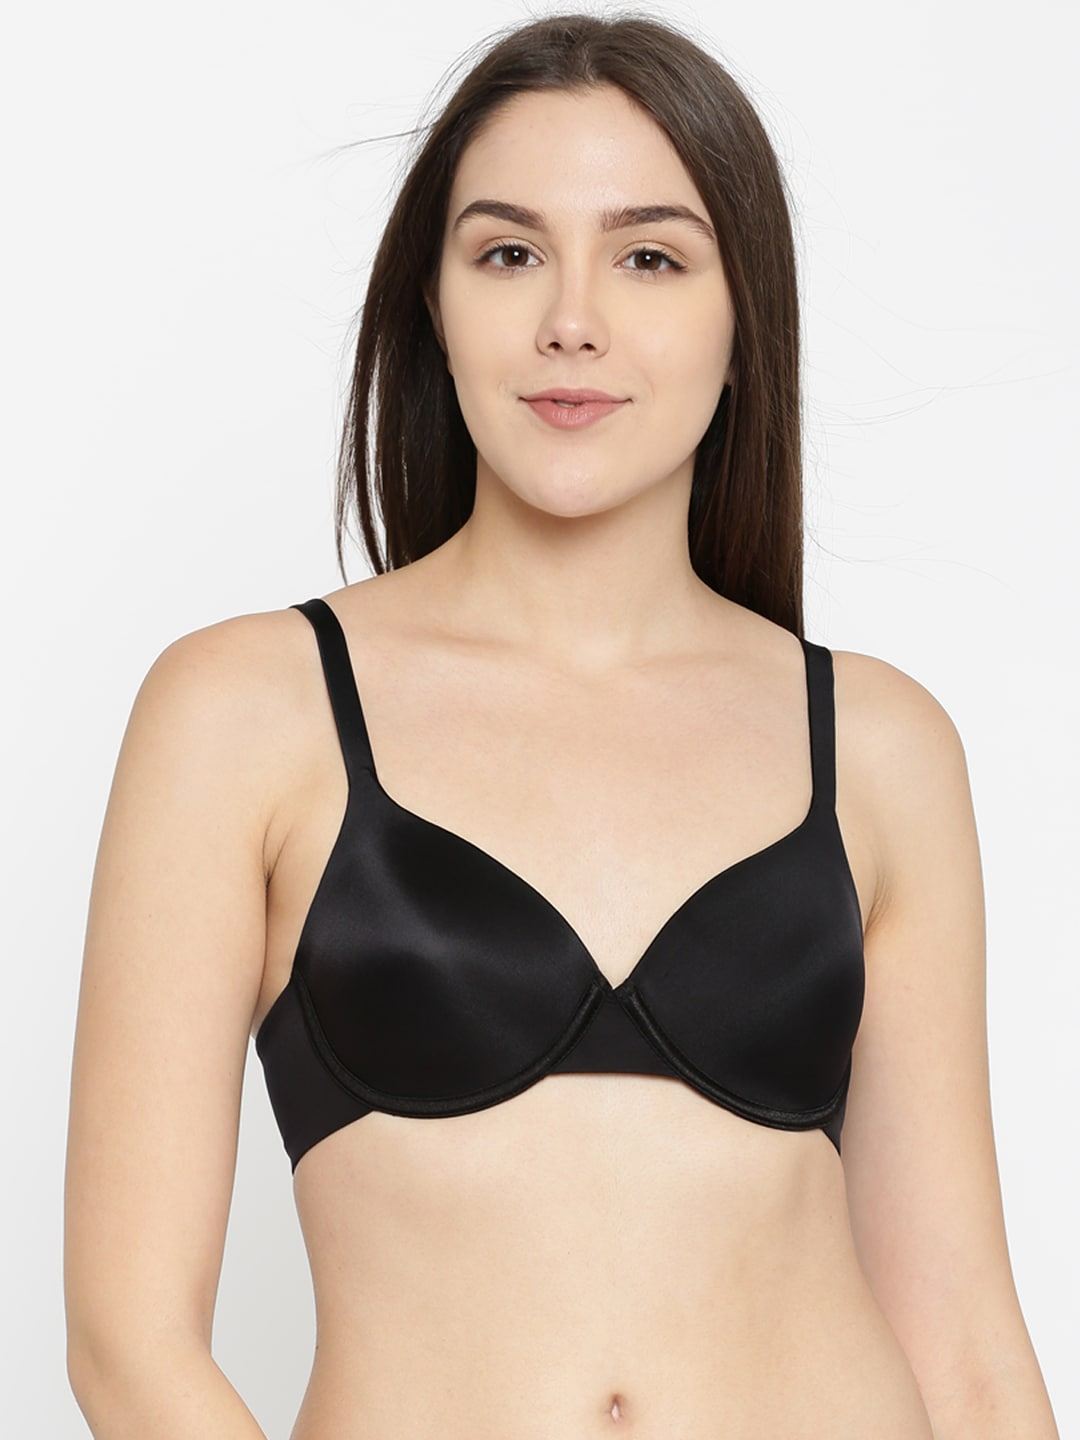 4a32cf86f7 Enamor Bra - Buy Enamor Bras for Women Online